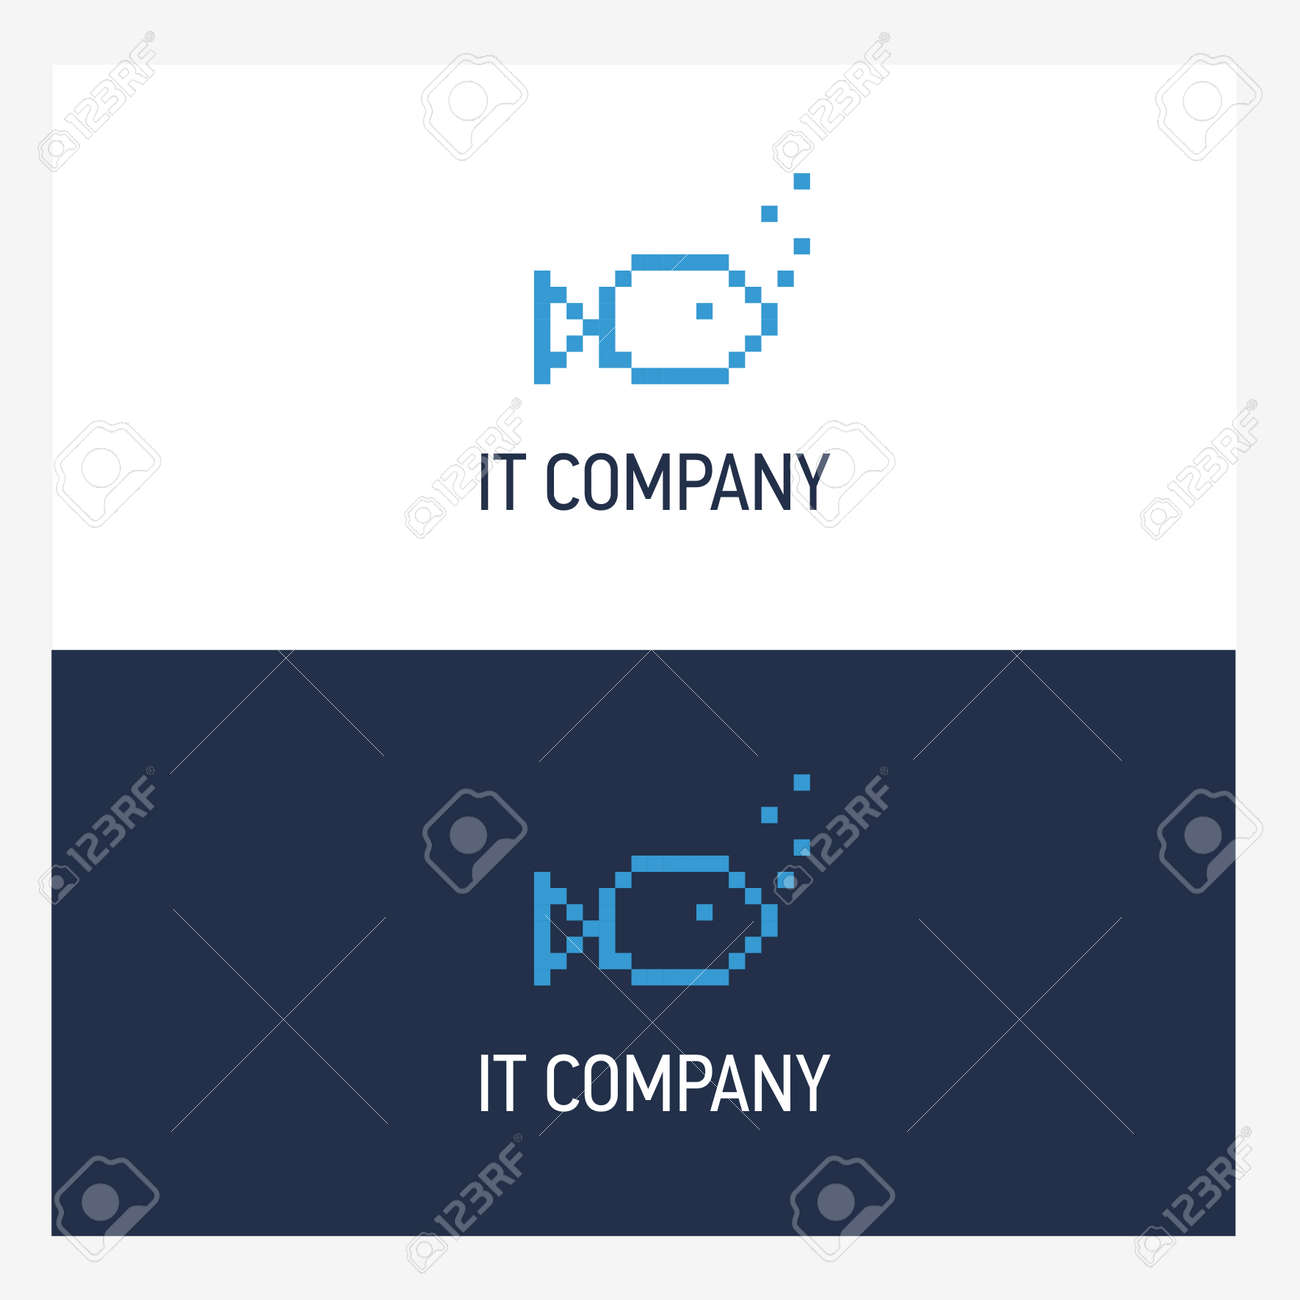 pixel fish logo design template with square style it company